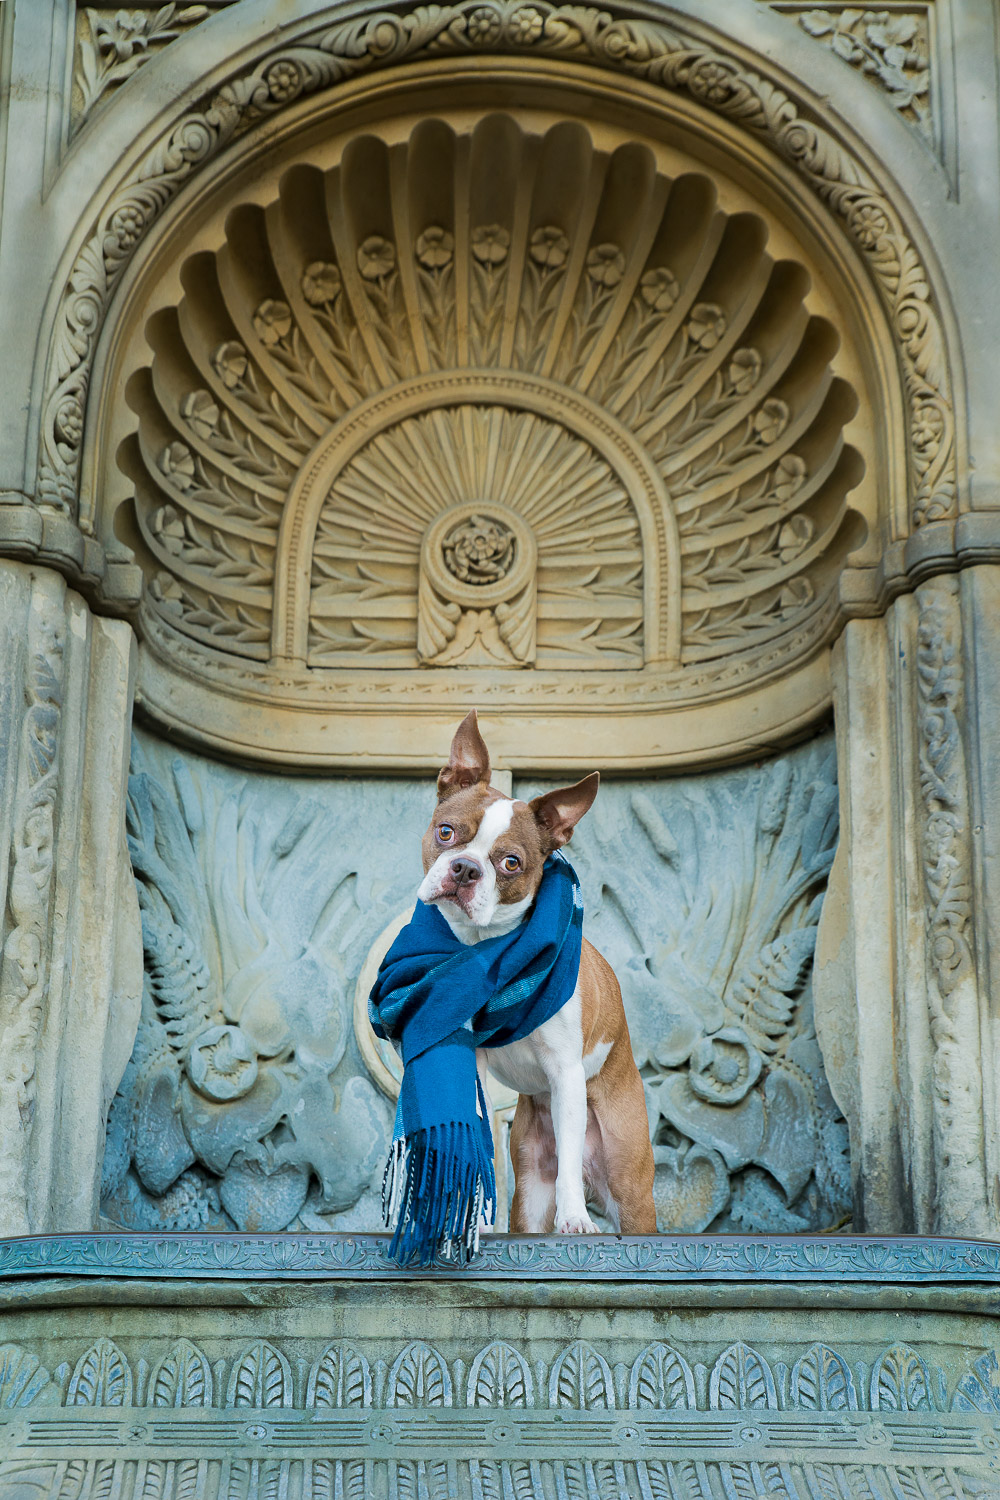 There were some beautiful carvings in this water fountain which really brings this pet portrait to life.